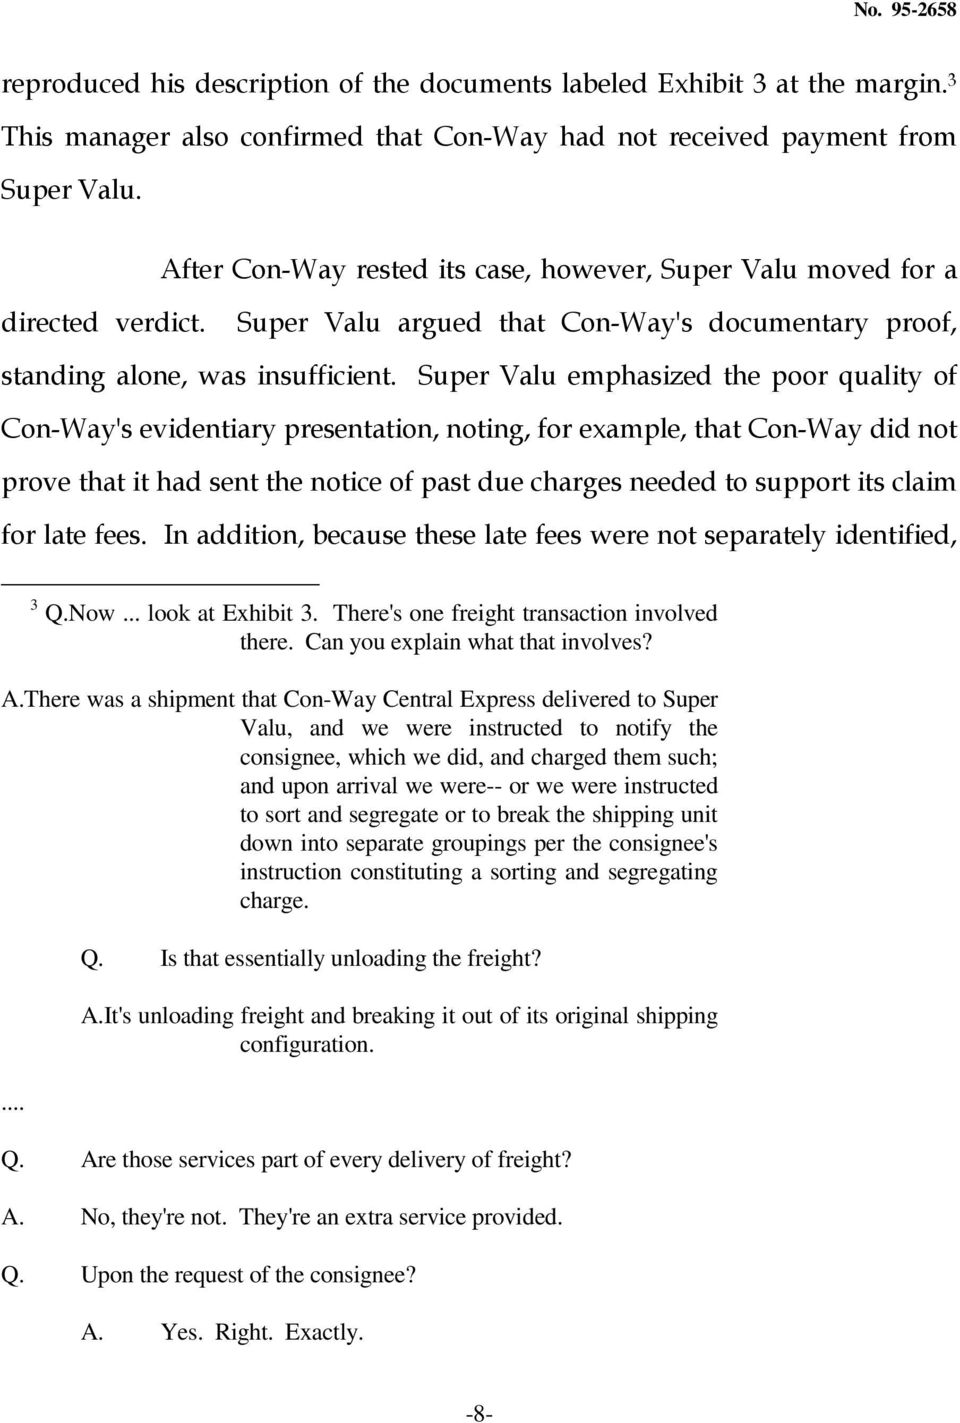 Super Valu emphasized the poor quality of Con-Way's evidentiary presentation, noting, for example, that Con-Way did not prove that it had sent the notice of past due charges needed to support its